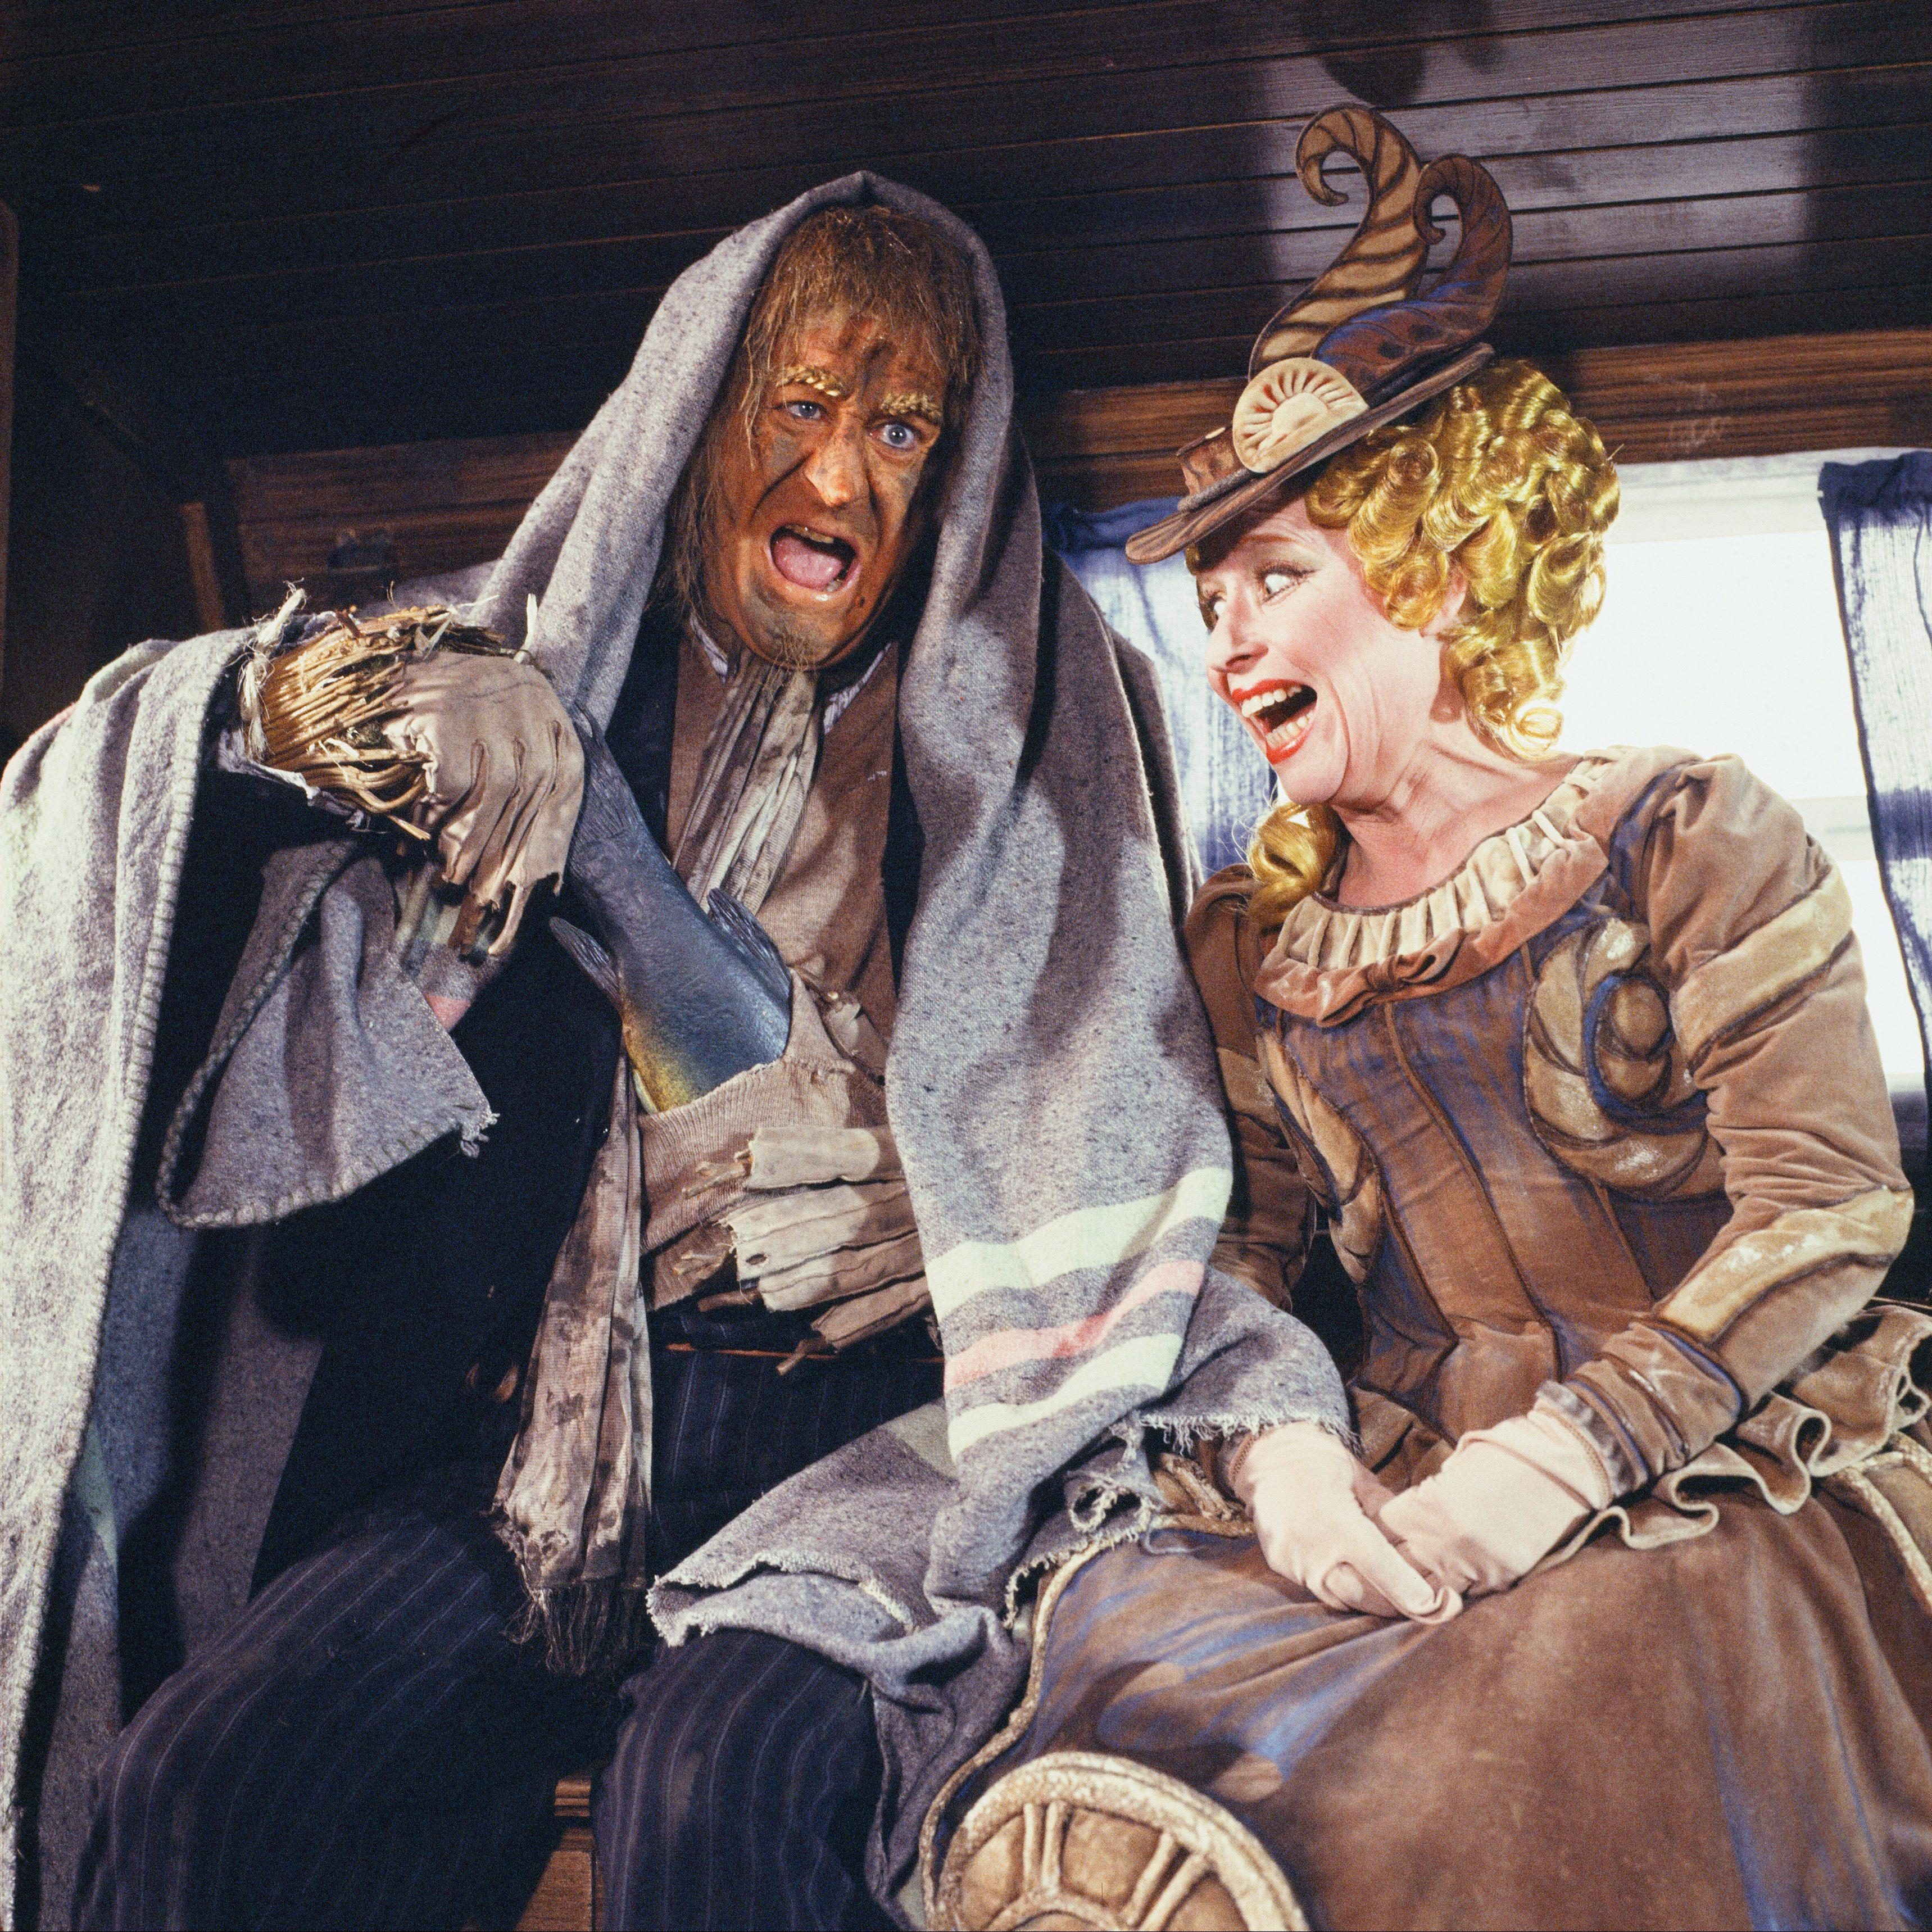 nintchdbpict000205983461 e1571738573379 Peter Jackson Did The Special Effects, And 19 Other Facts About Worzel Gummidge